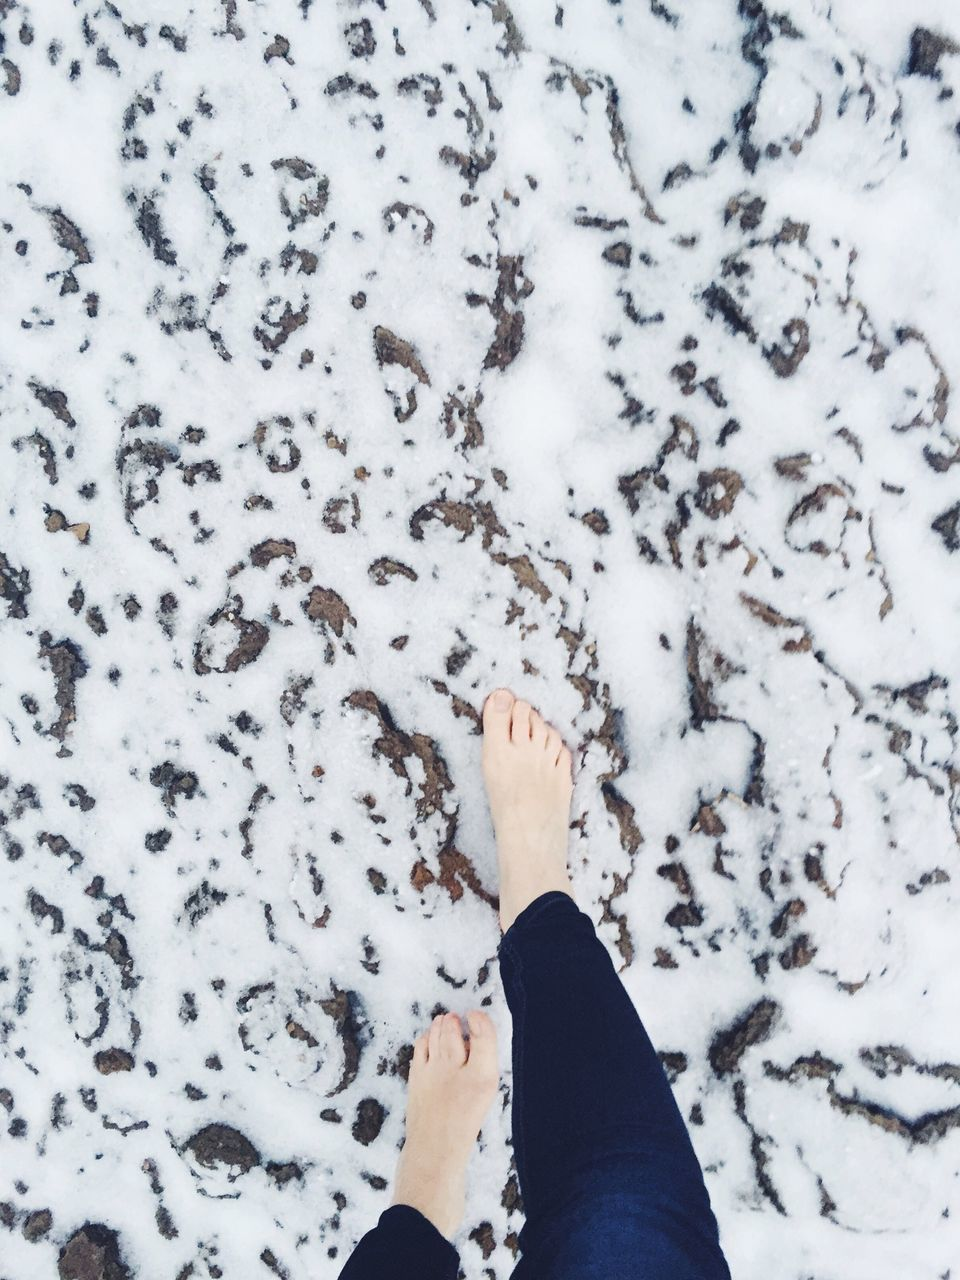 Low Section Of Woman Walking On Snow